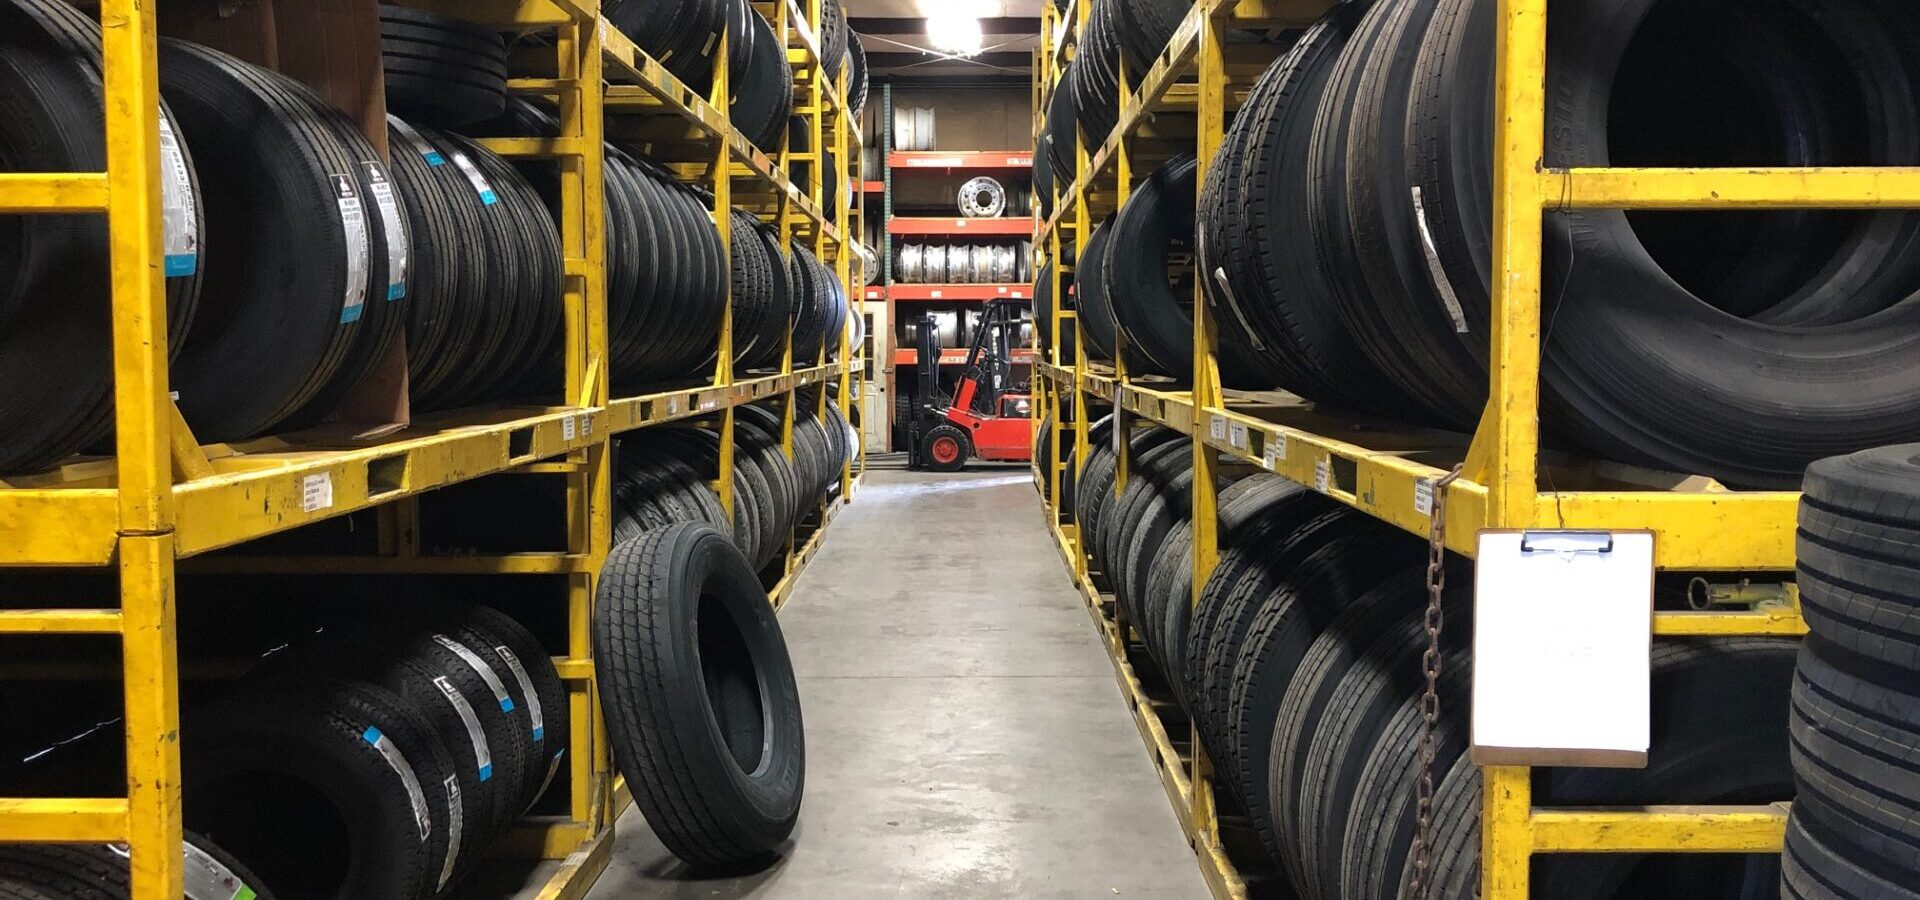 racks of tires